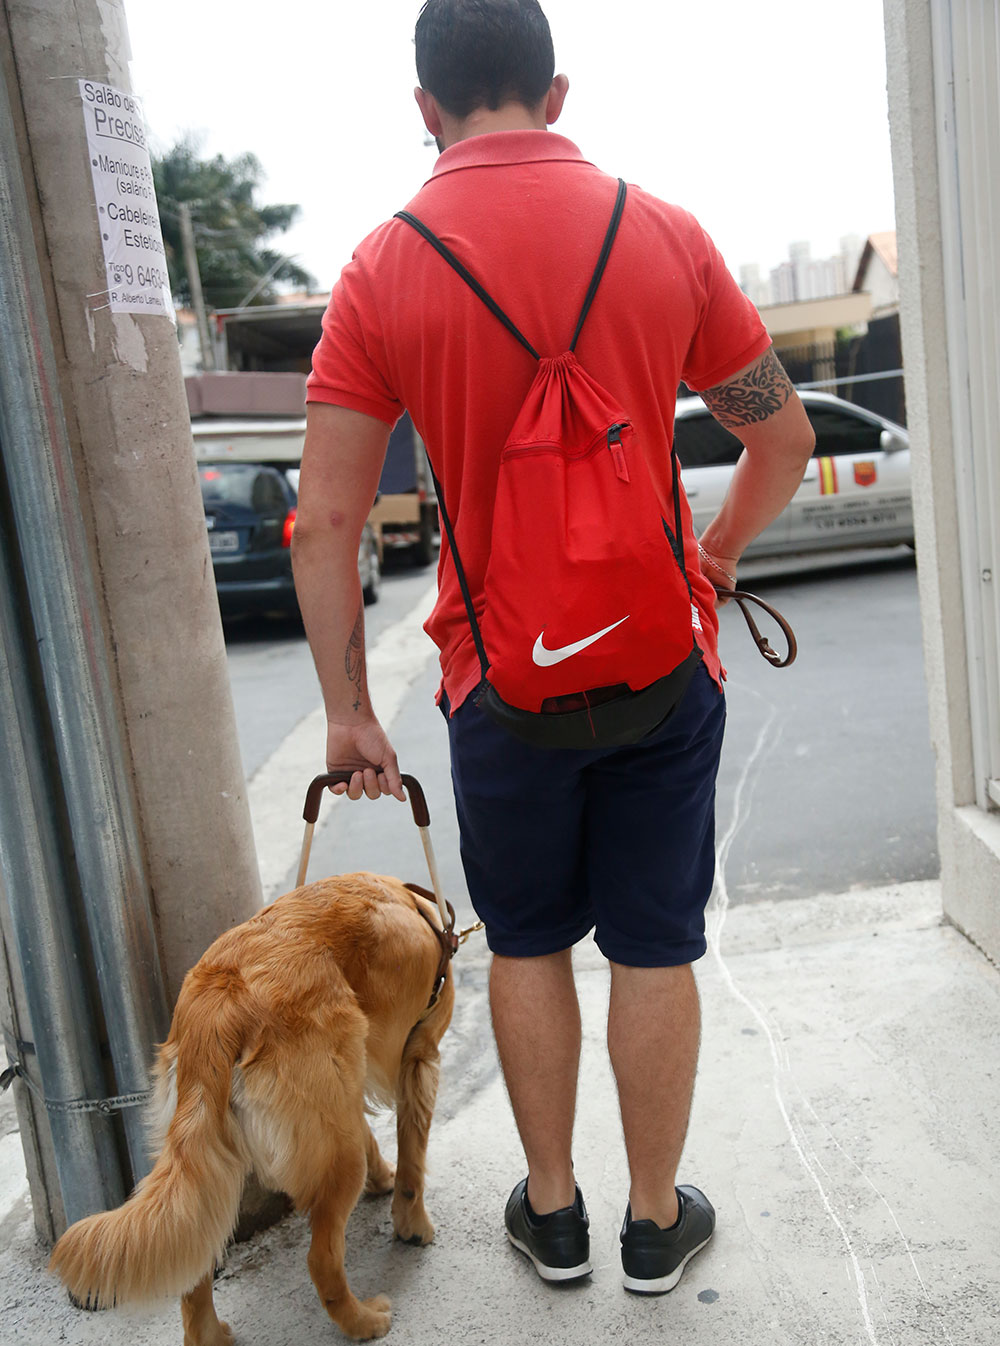 Darley walking with his guide dog, Clark